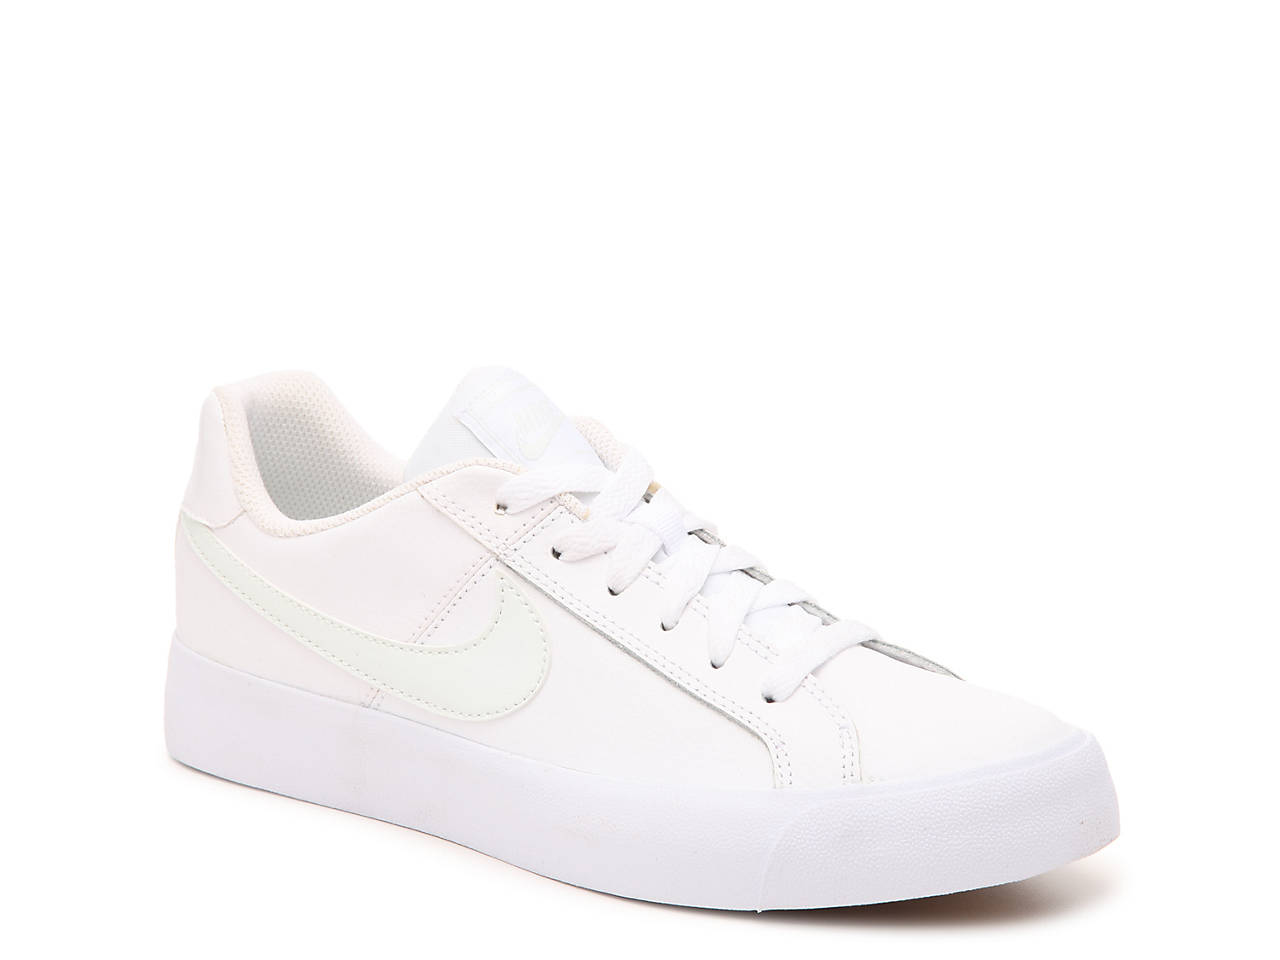 separation shoes 65c7d 3b3e8 Nike. Court Royale Sneaker - Women s